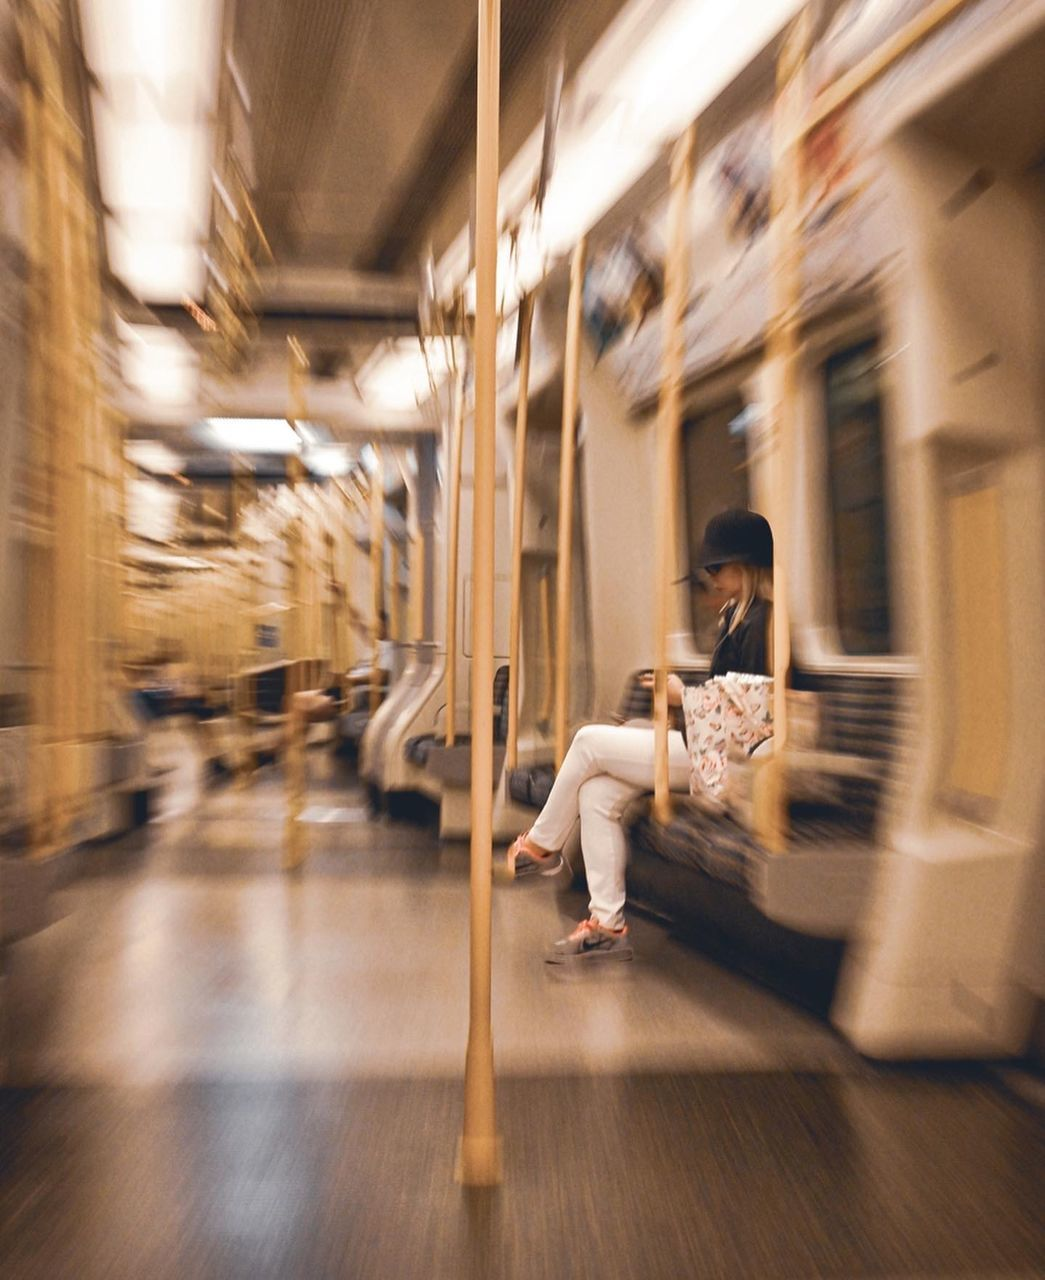 BLURRED MOTION OF PEOPLE SITTING AT SUBWAY TRAIN